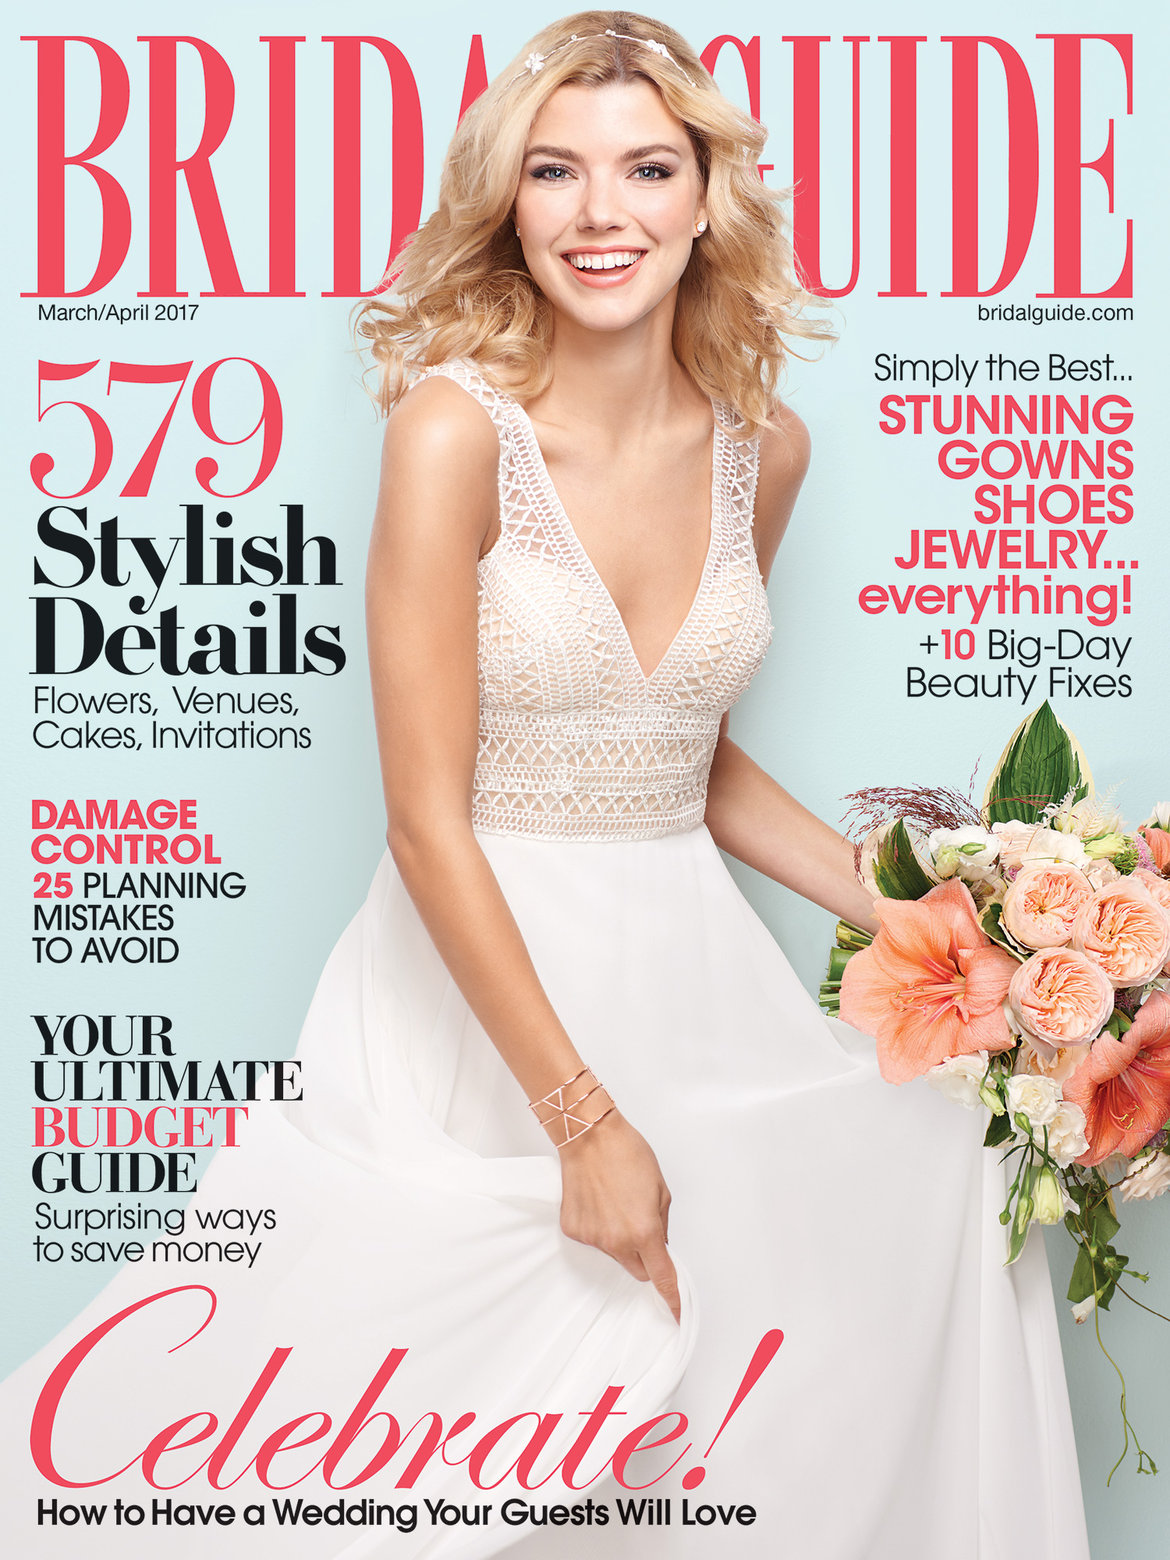 Bridal Guide March April 2017 Cover